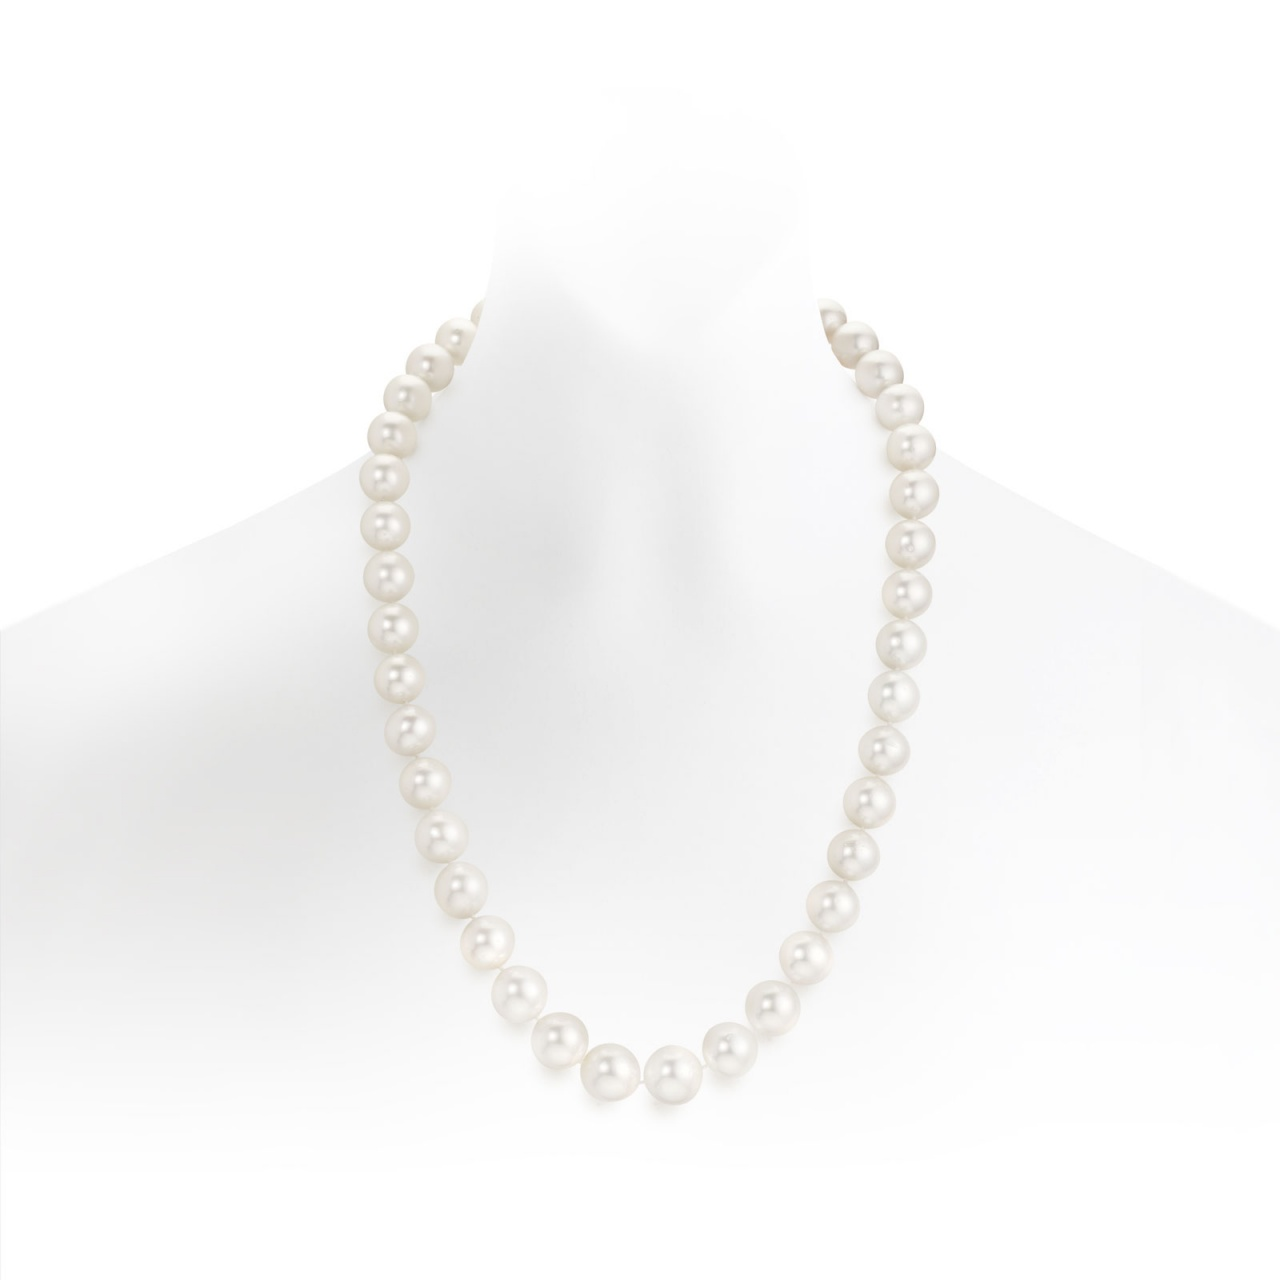 Long White South Sea Pearl Necklace with Pave Diamonds & 18ct Gold-SNWRWG0001-1